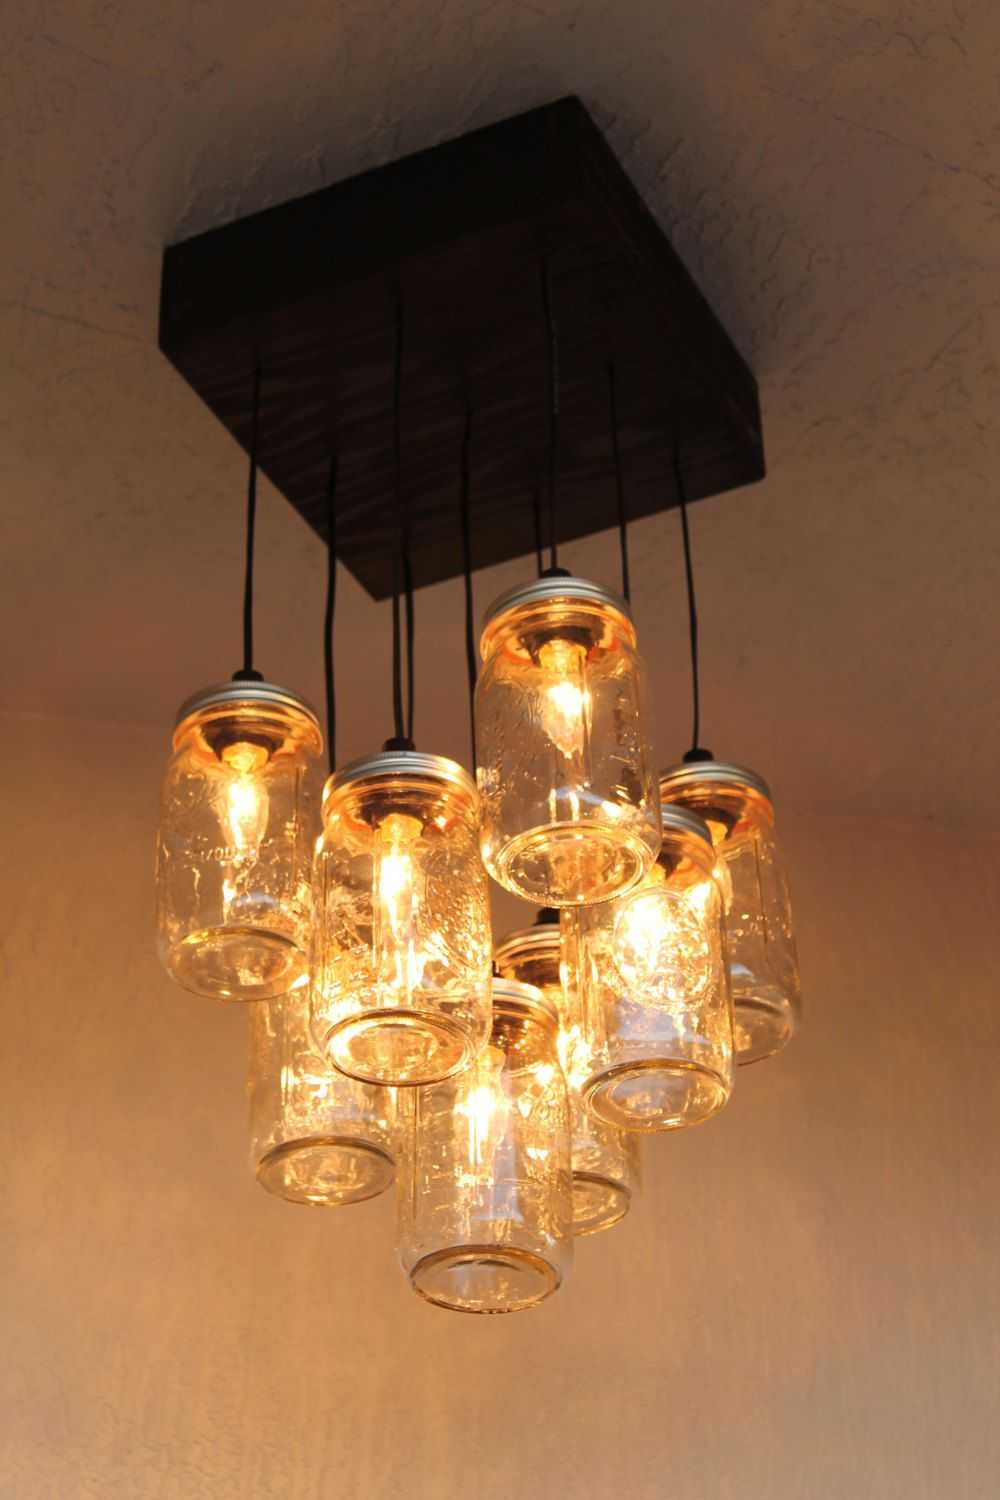 mason jar lighting diy 1000 images about lighting on pinterest mason jar chandelier industrial chandelier and alternating length wagon wheel mason jar